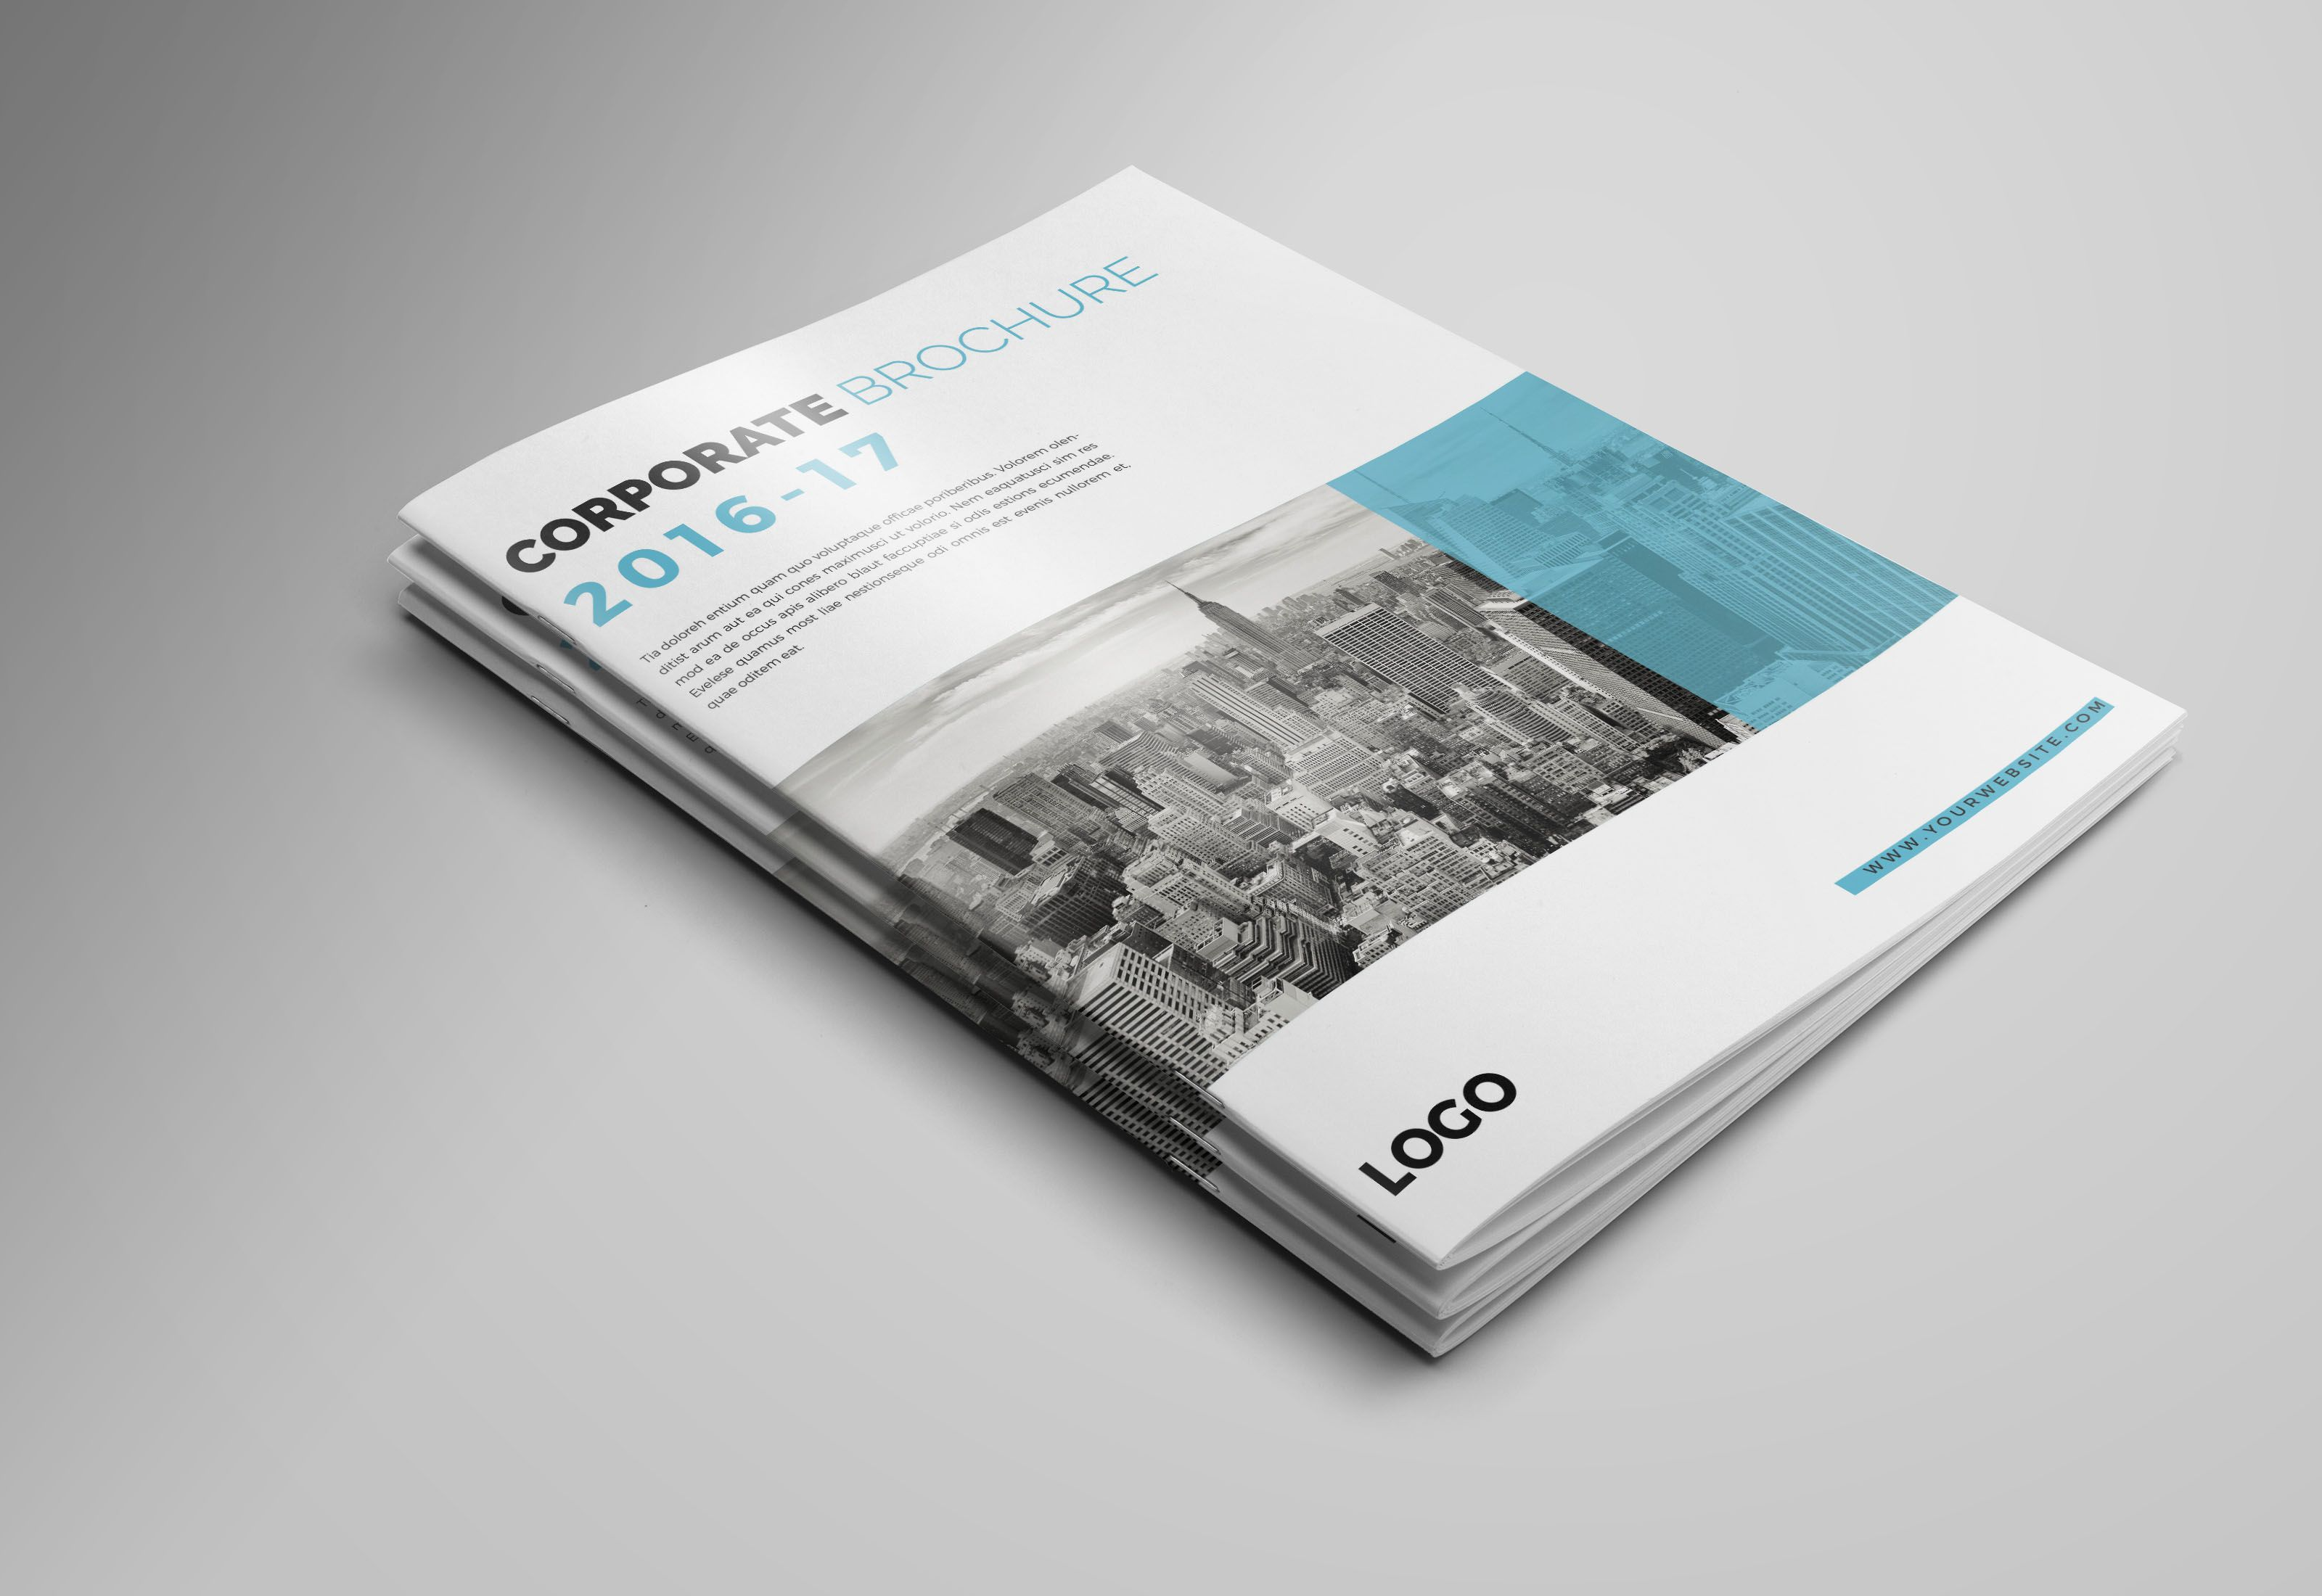 """Check out my @Behance project: """"Corporate 14 Page Brochure template"""" https://www.behance.net/gallery/45019259/Corporate-14-Page-Brochure-template"""